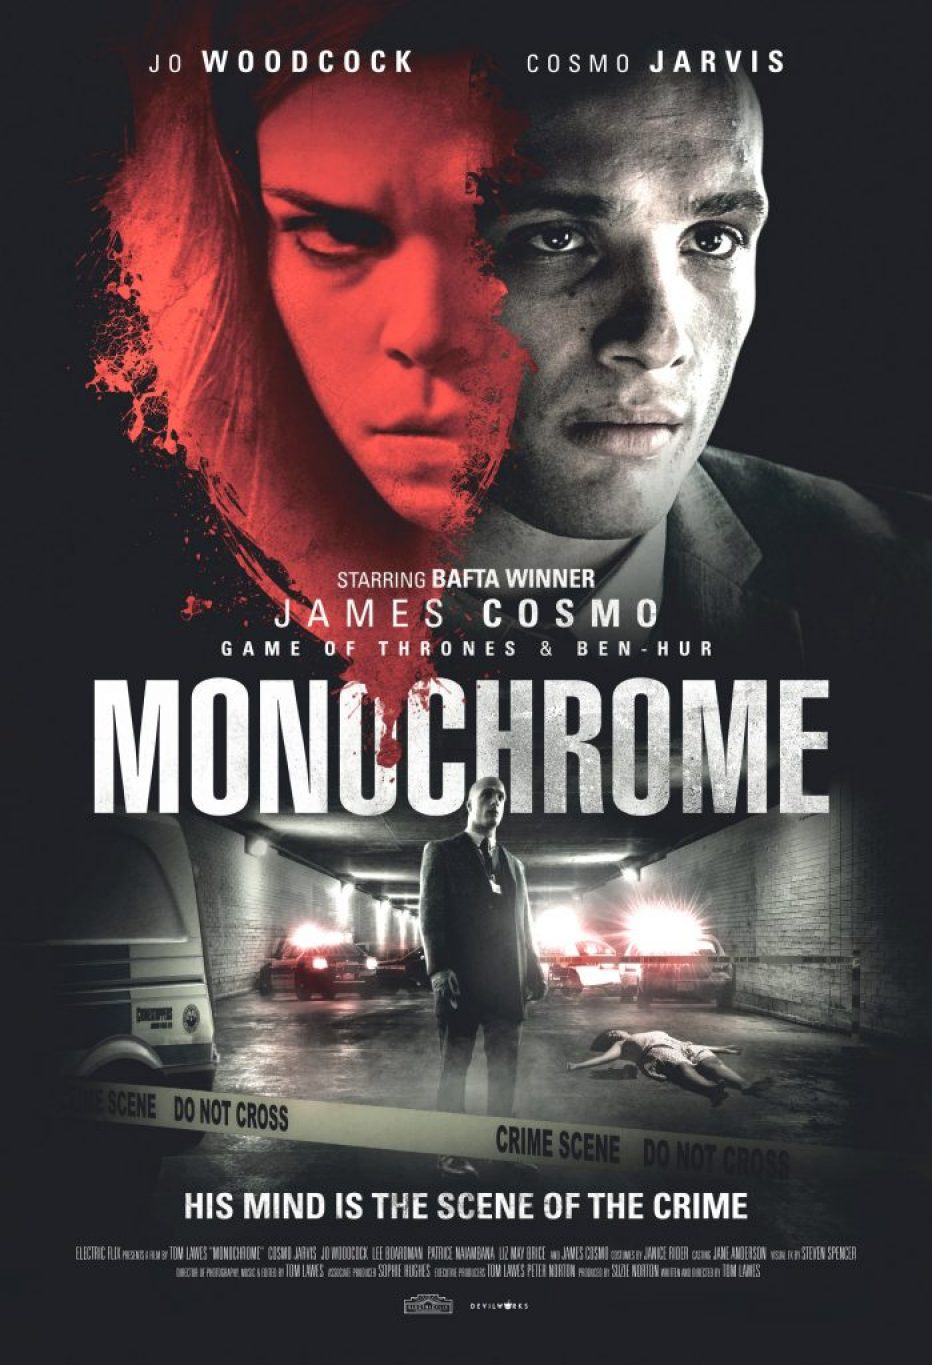 Thomas Lawes' Monochrome premieres on VOD and DVD this June from Gravitas Ventures.